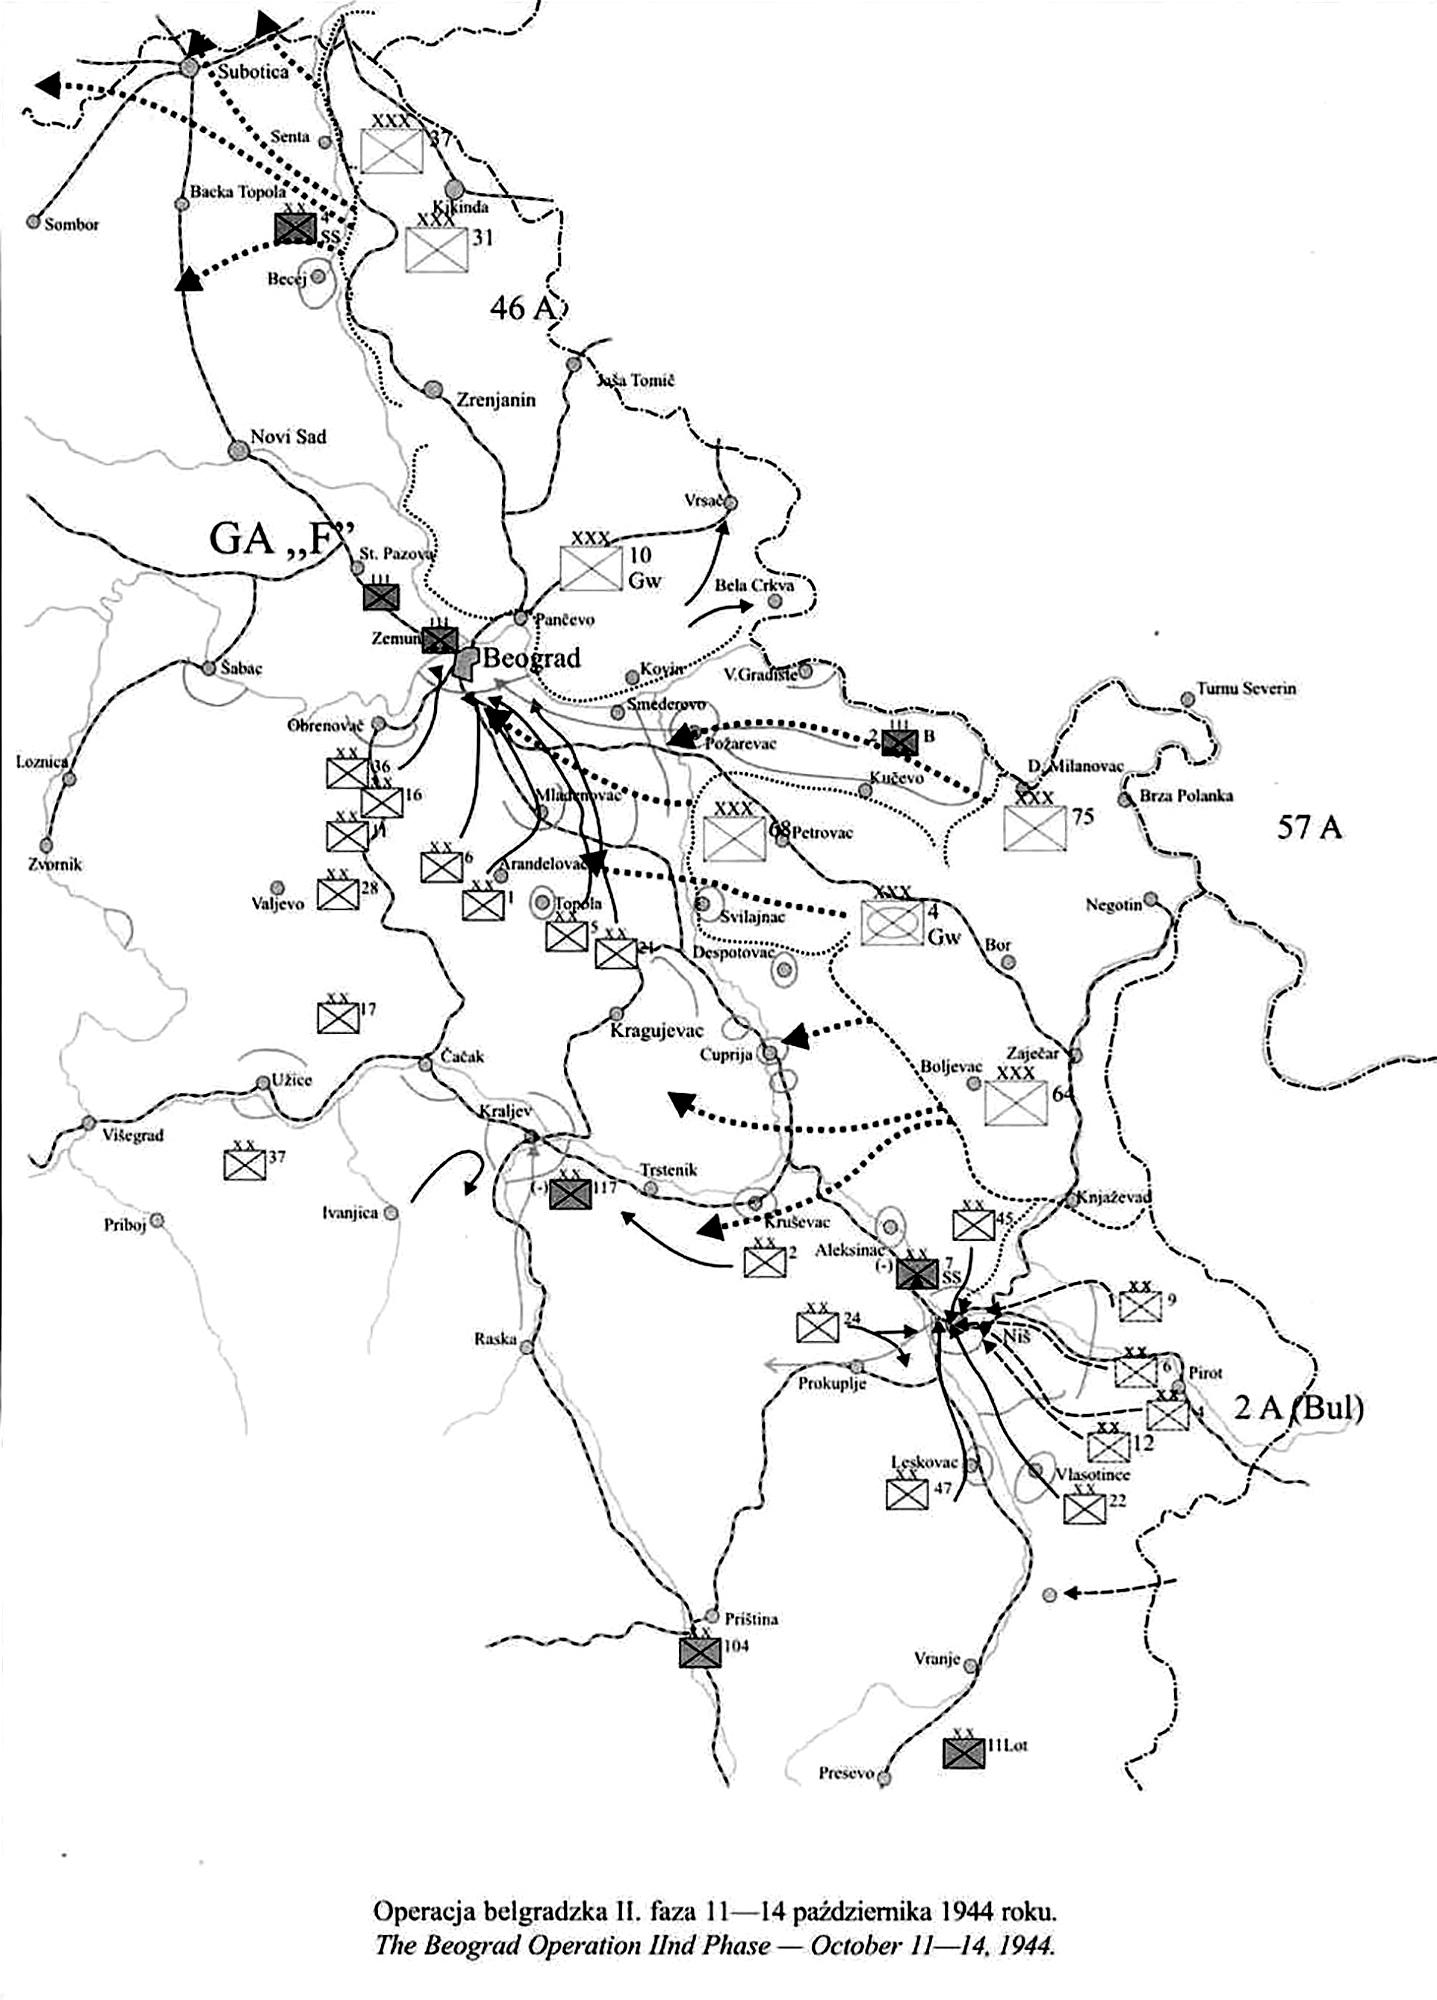 Artwork showing a map of Bulgaria Beograd Operation 2nd Phase Oct 11 1944 0A